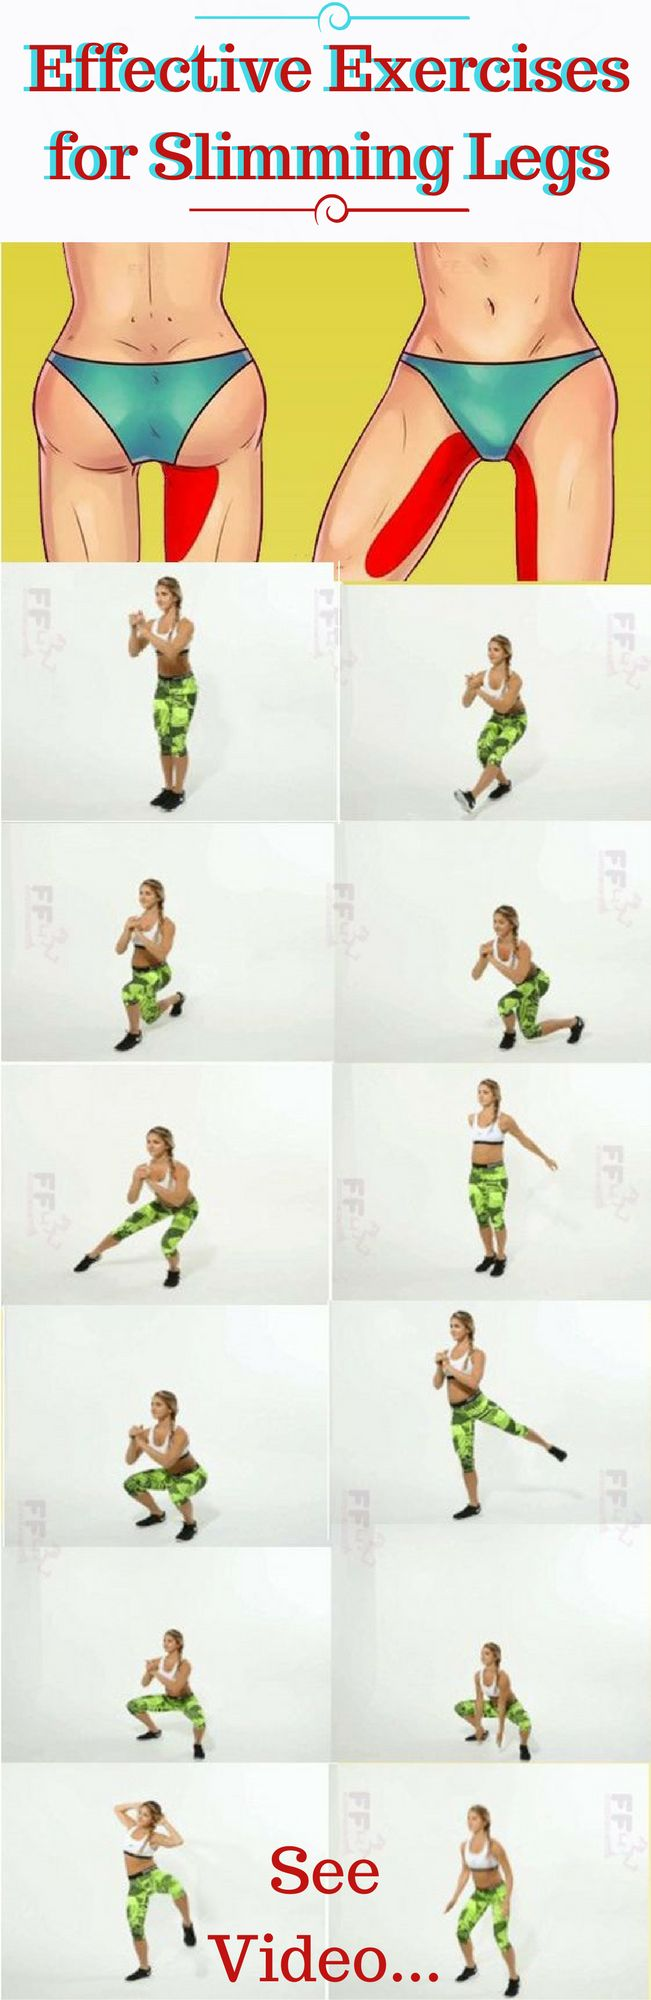 Exercises for thinking legs.